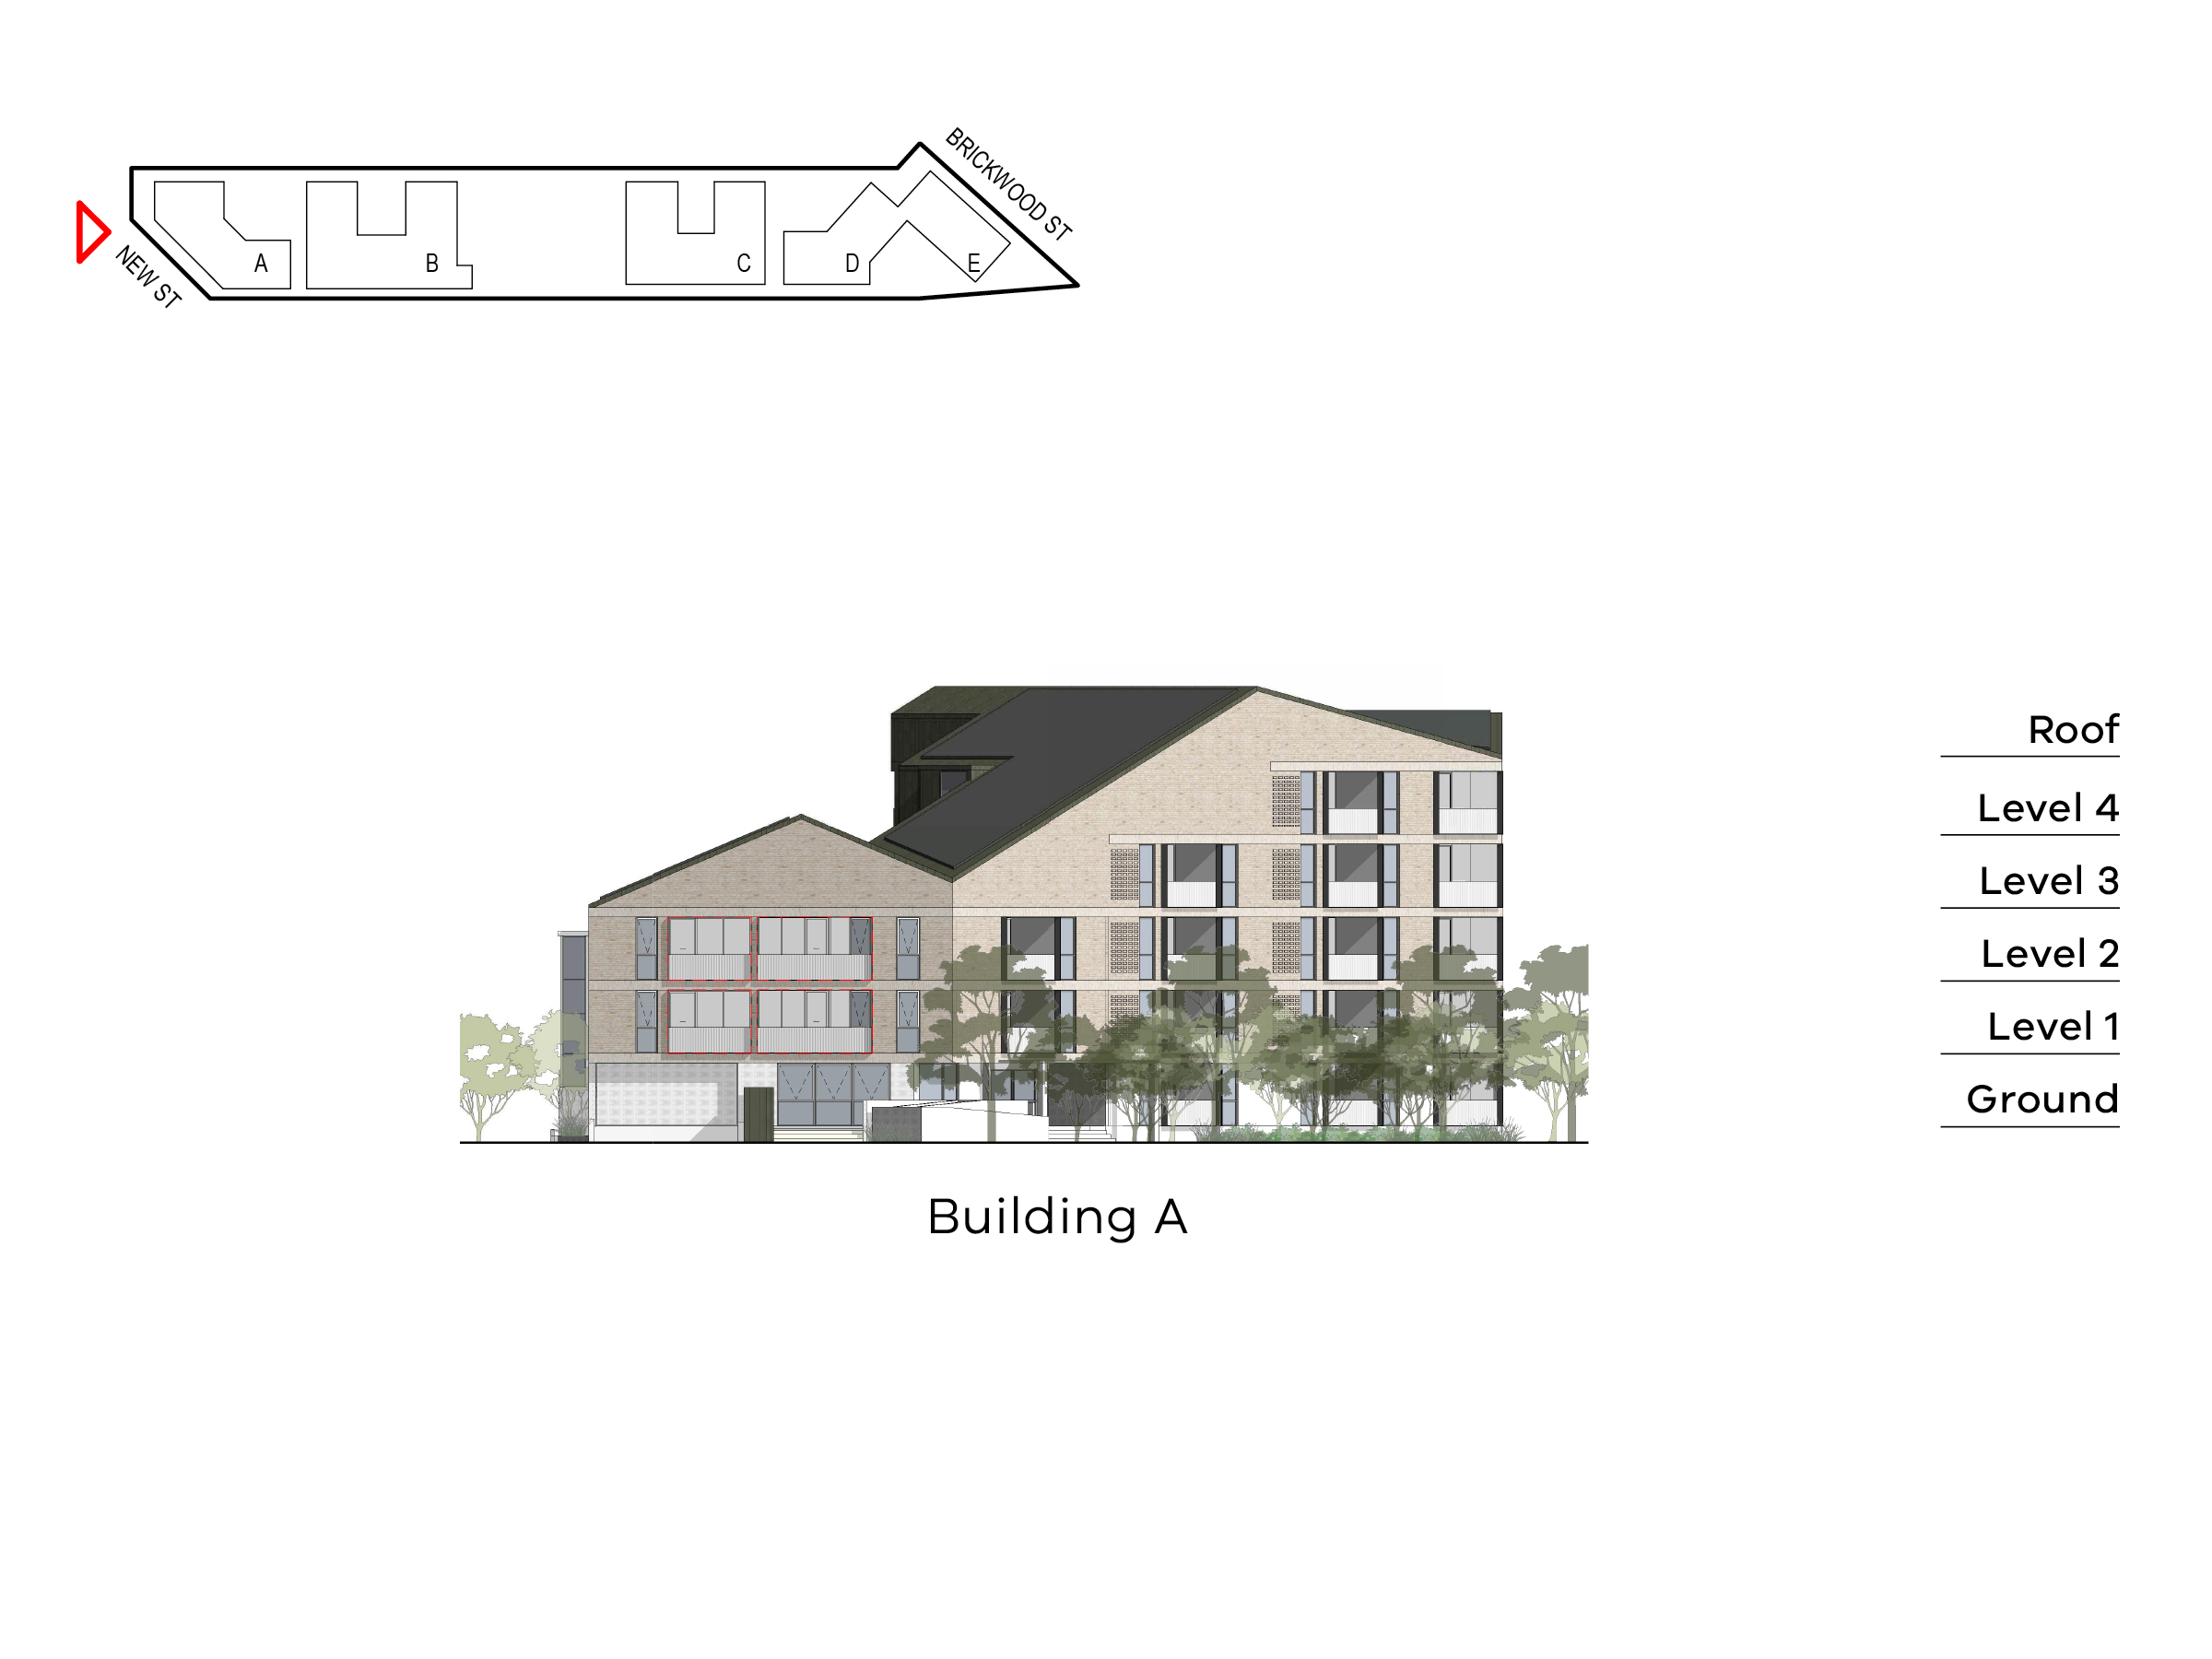 Diagram showing the heights of building A as seen from New Street and Rusden Street. Building A includes ground level, level 1 - 4 and a roof on the Elster Creek side, ground level, level 1-2 and a roof on the Rusden Street side